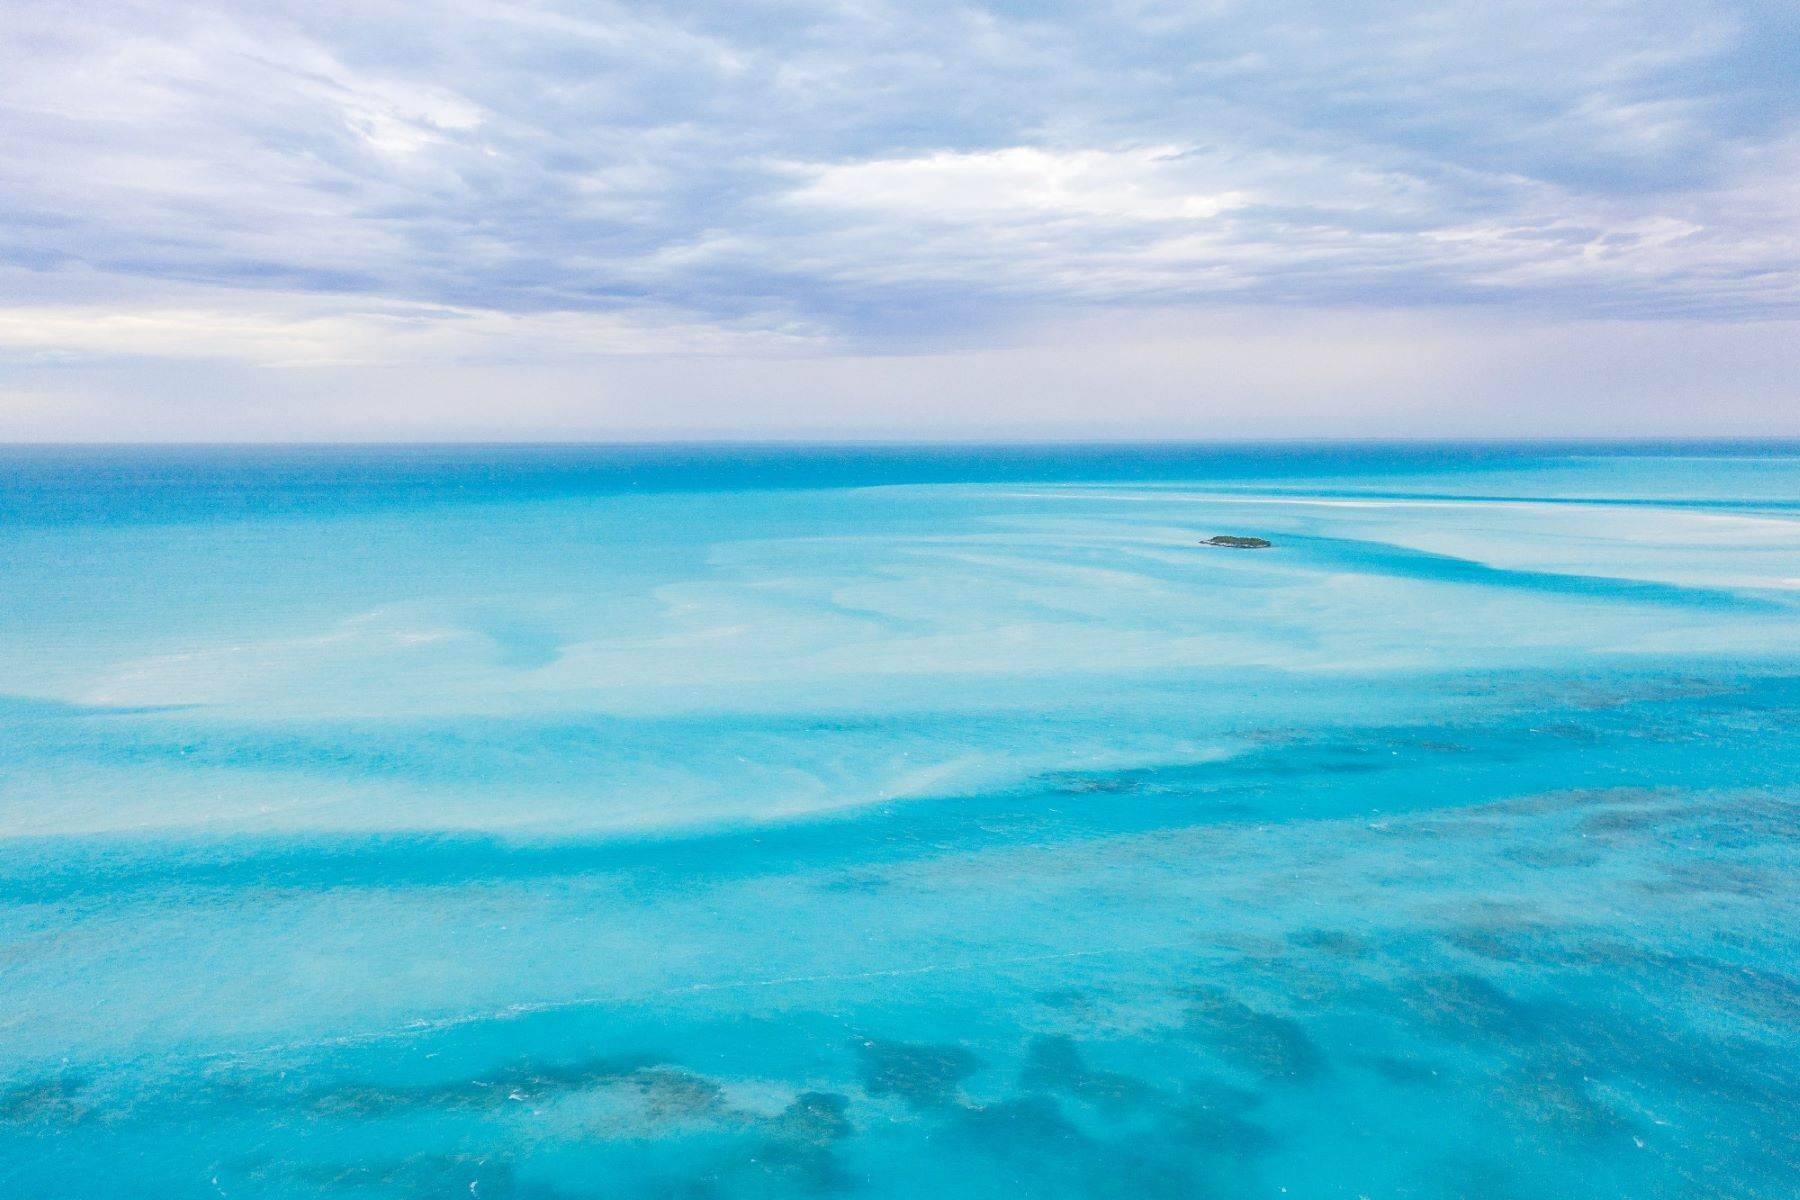 13. Private Islands for Sale at Exuma Cays, Exuma Bahamas